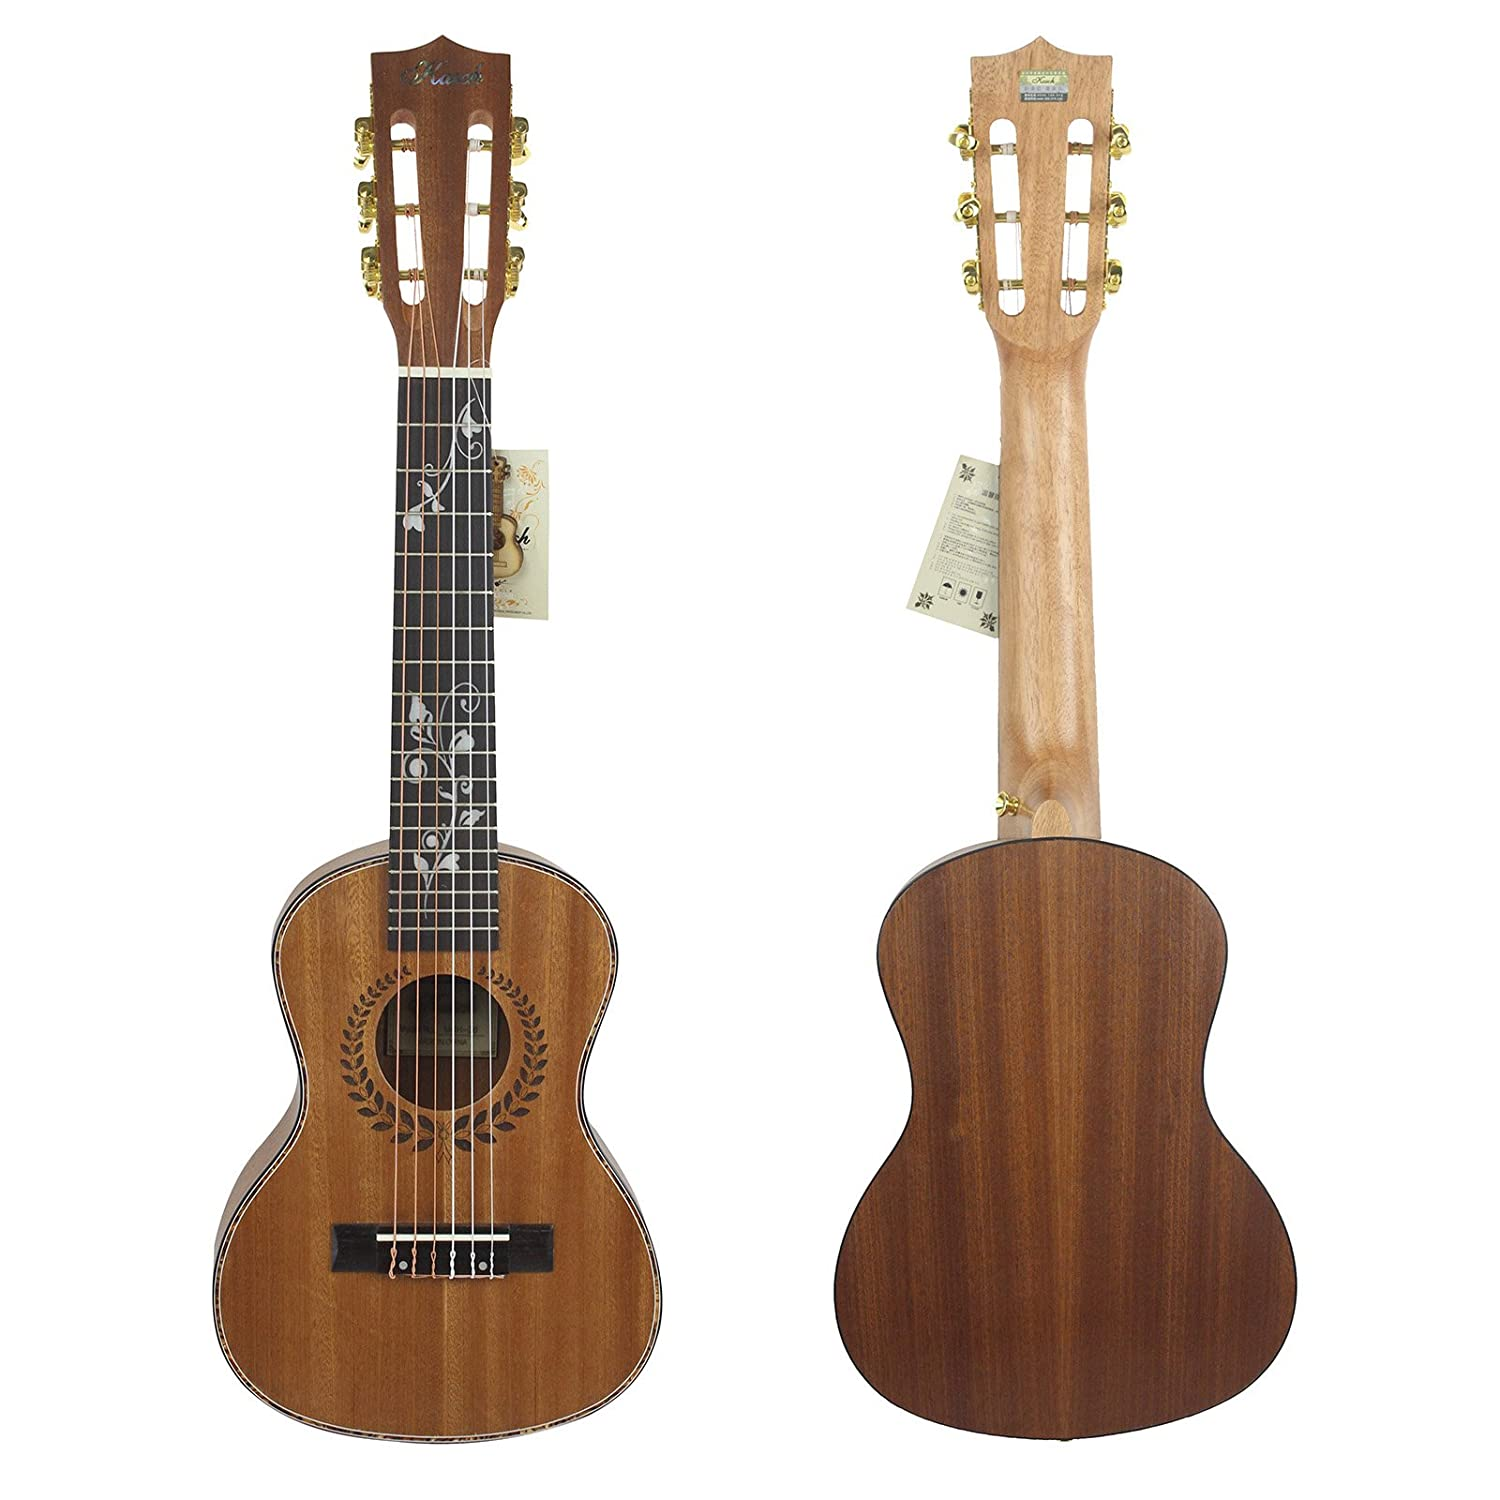 Luckycyc 28 Inch Guitalele Solid Cedar Rosewood Ukulele with Free String Tuner and Bag 1